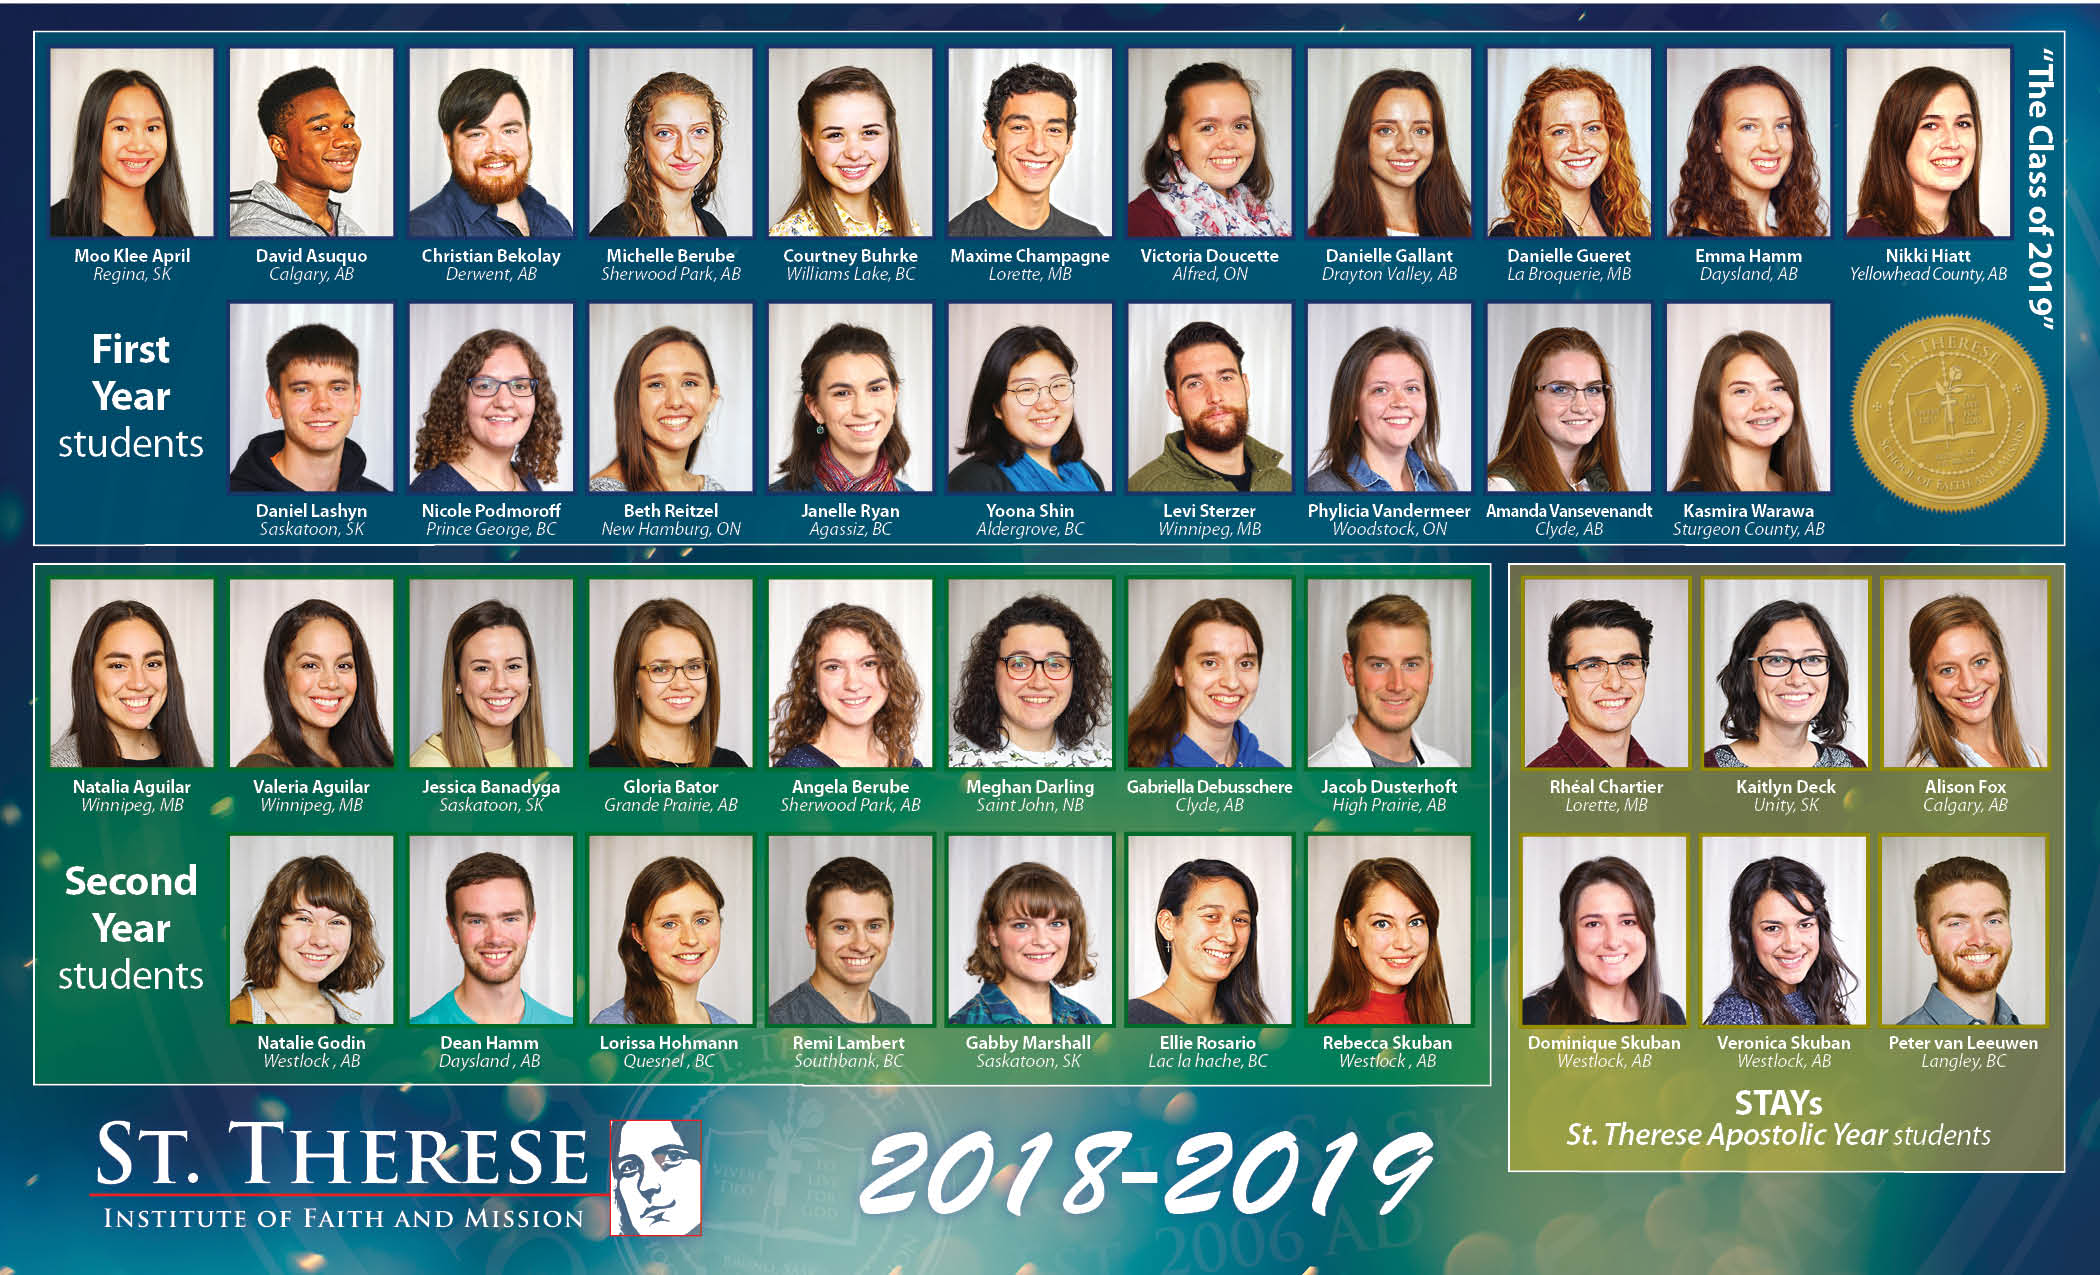 St. Therese Faith Formation Program - Class of 2018 2019